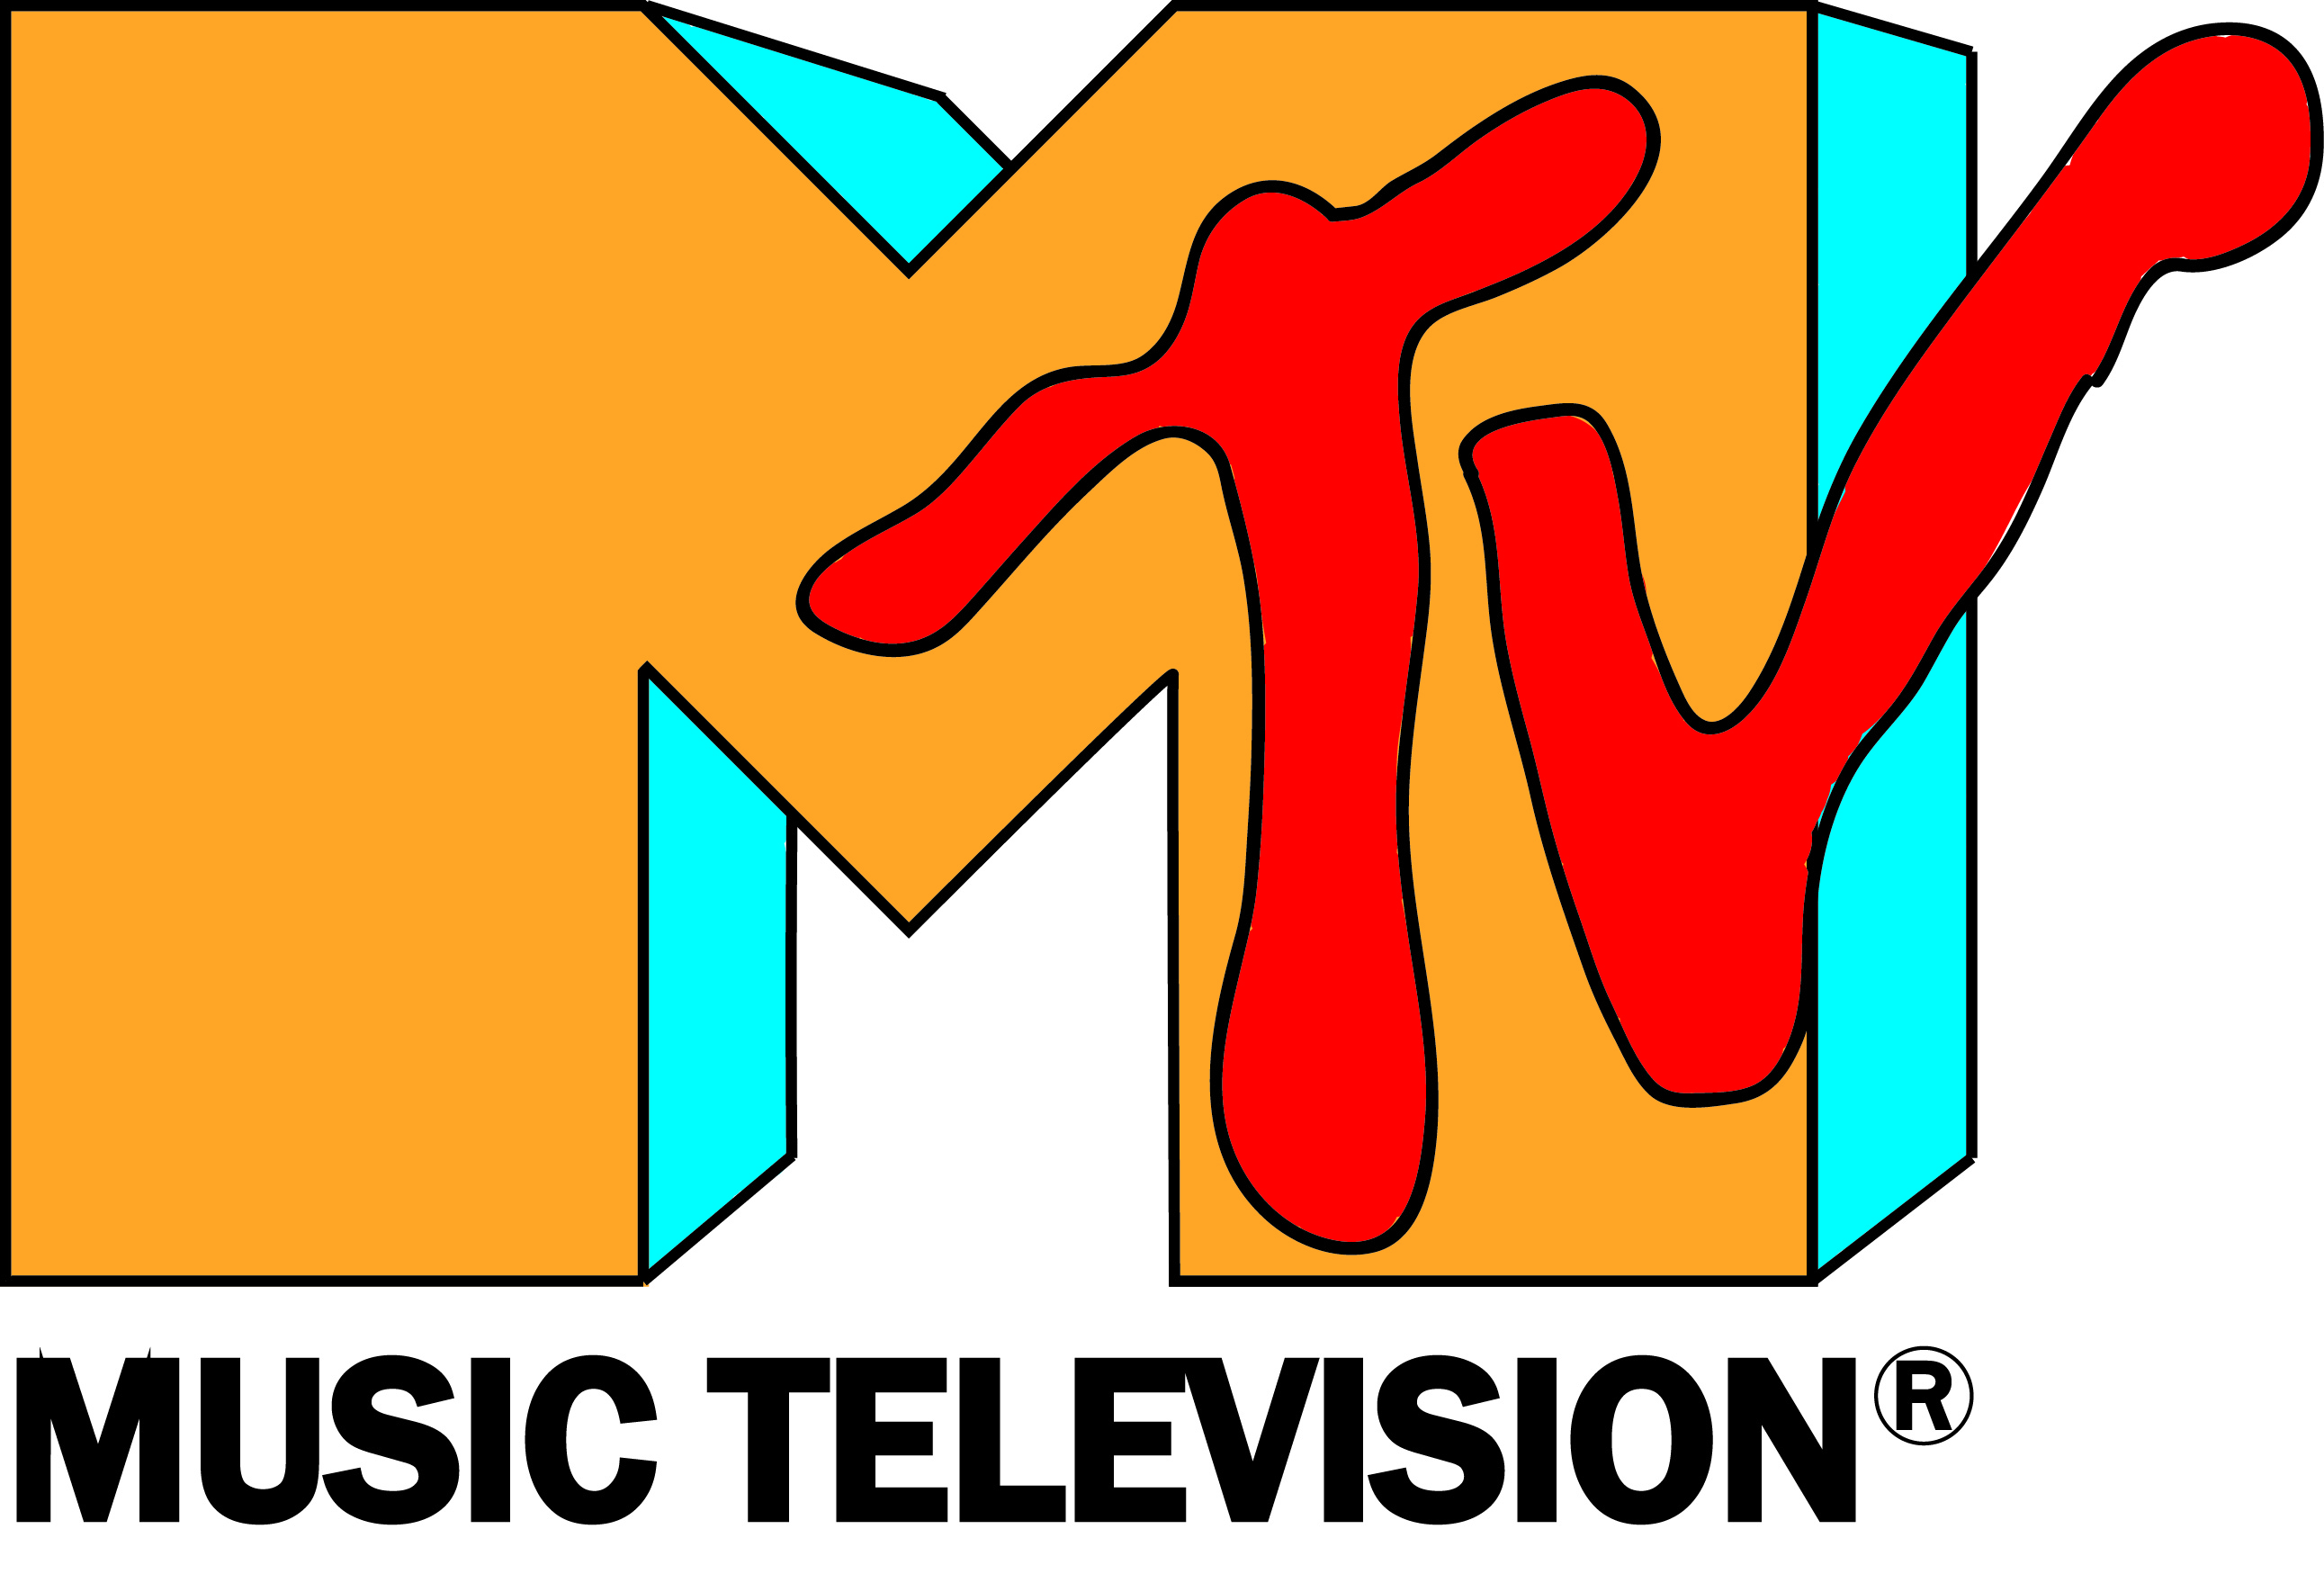 http://sarge63j20.files.wordpress.com/2011/01/mtv-logo.jpg